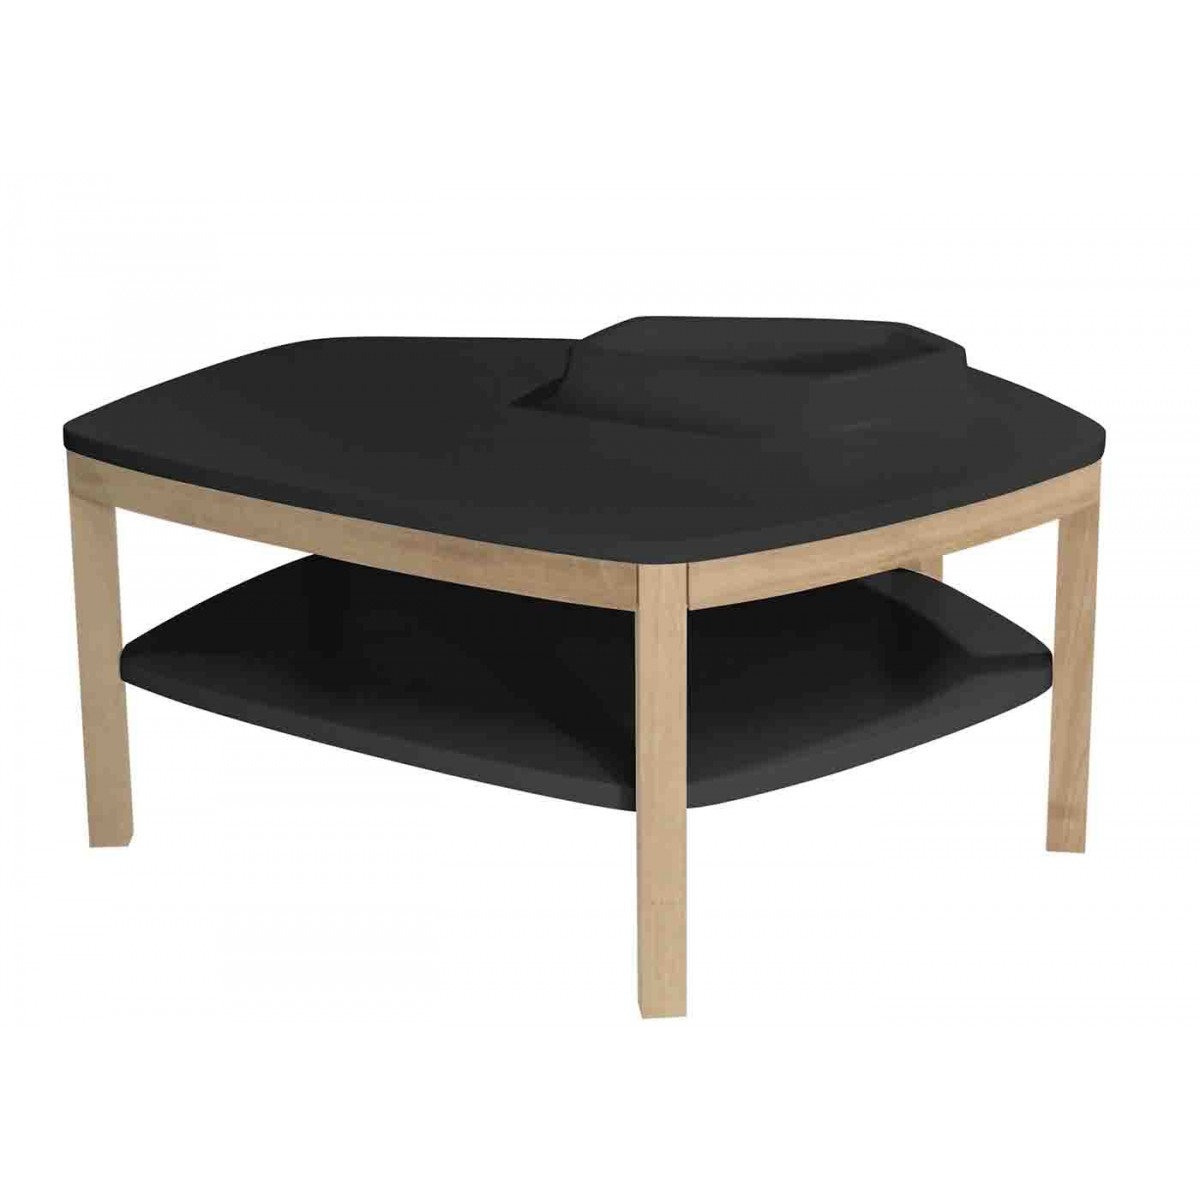 table basse volcane pied original design avec vasque int gr bellila. Black Bedroom Furniture Sets. Home Design Ideas